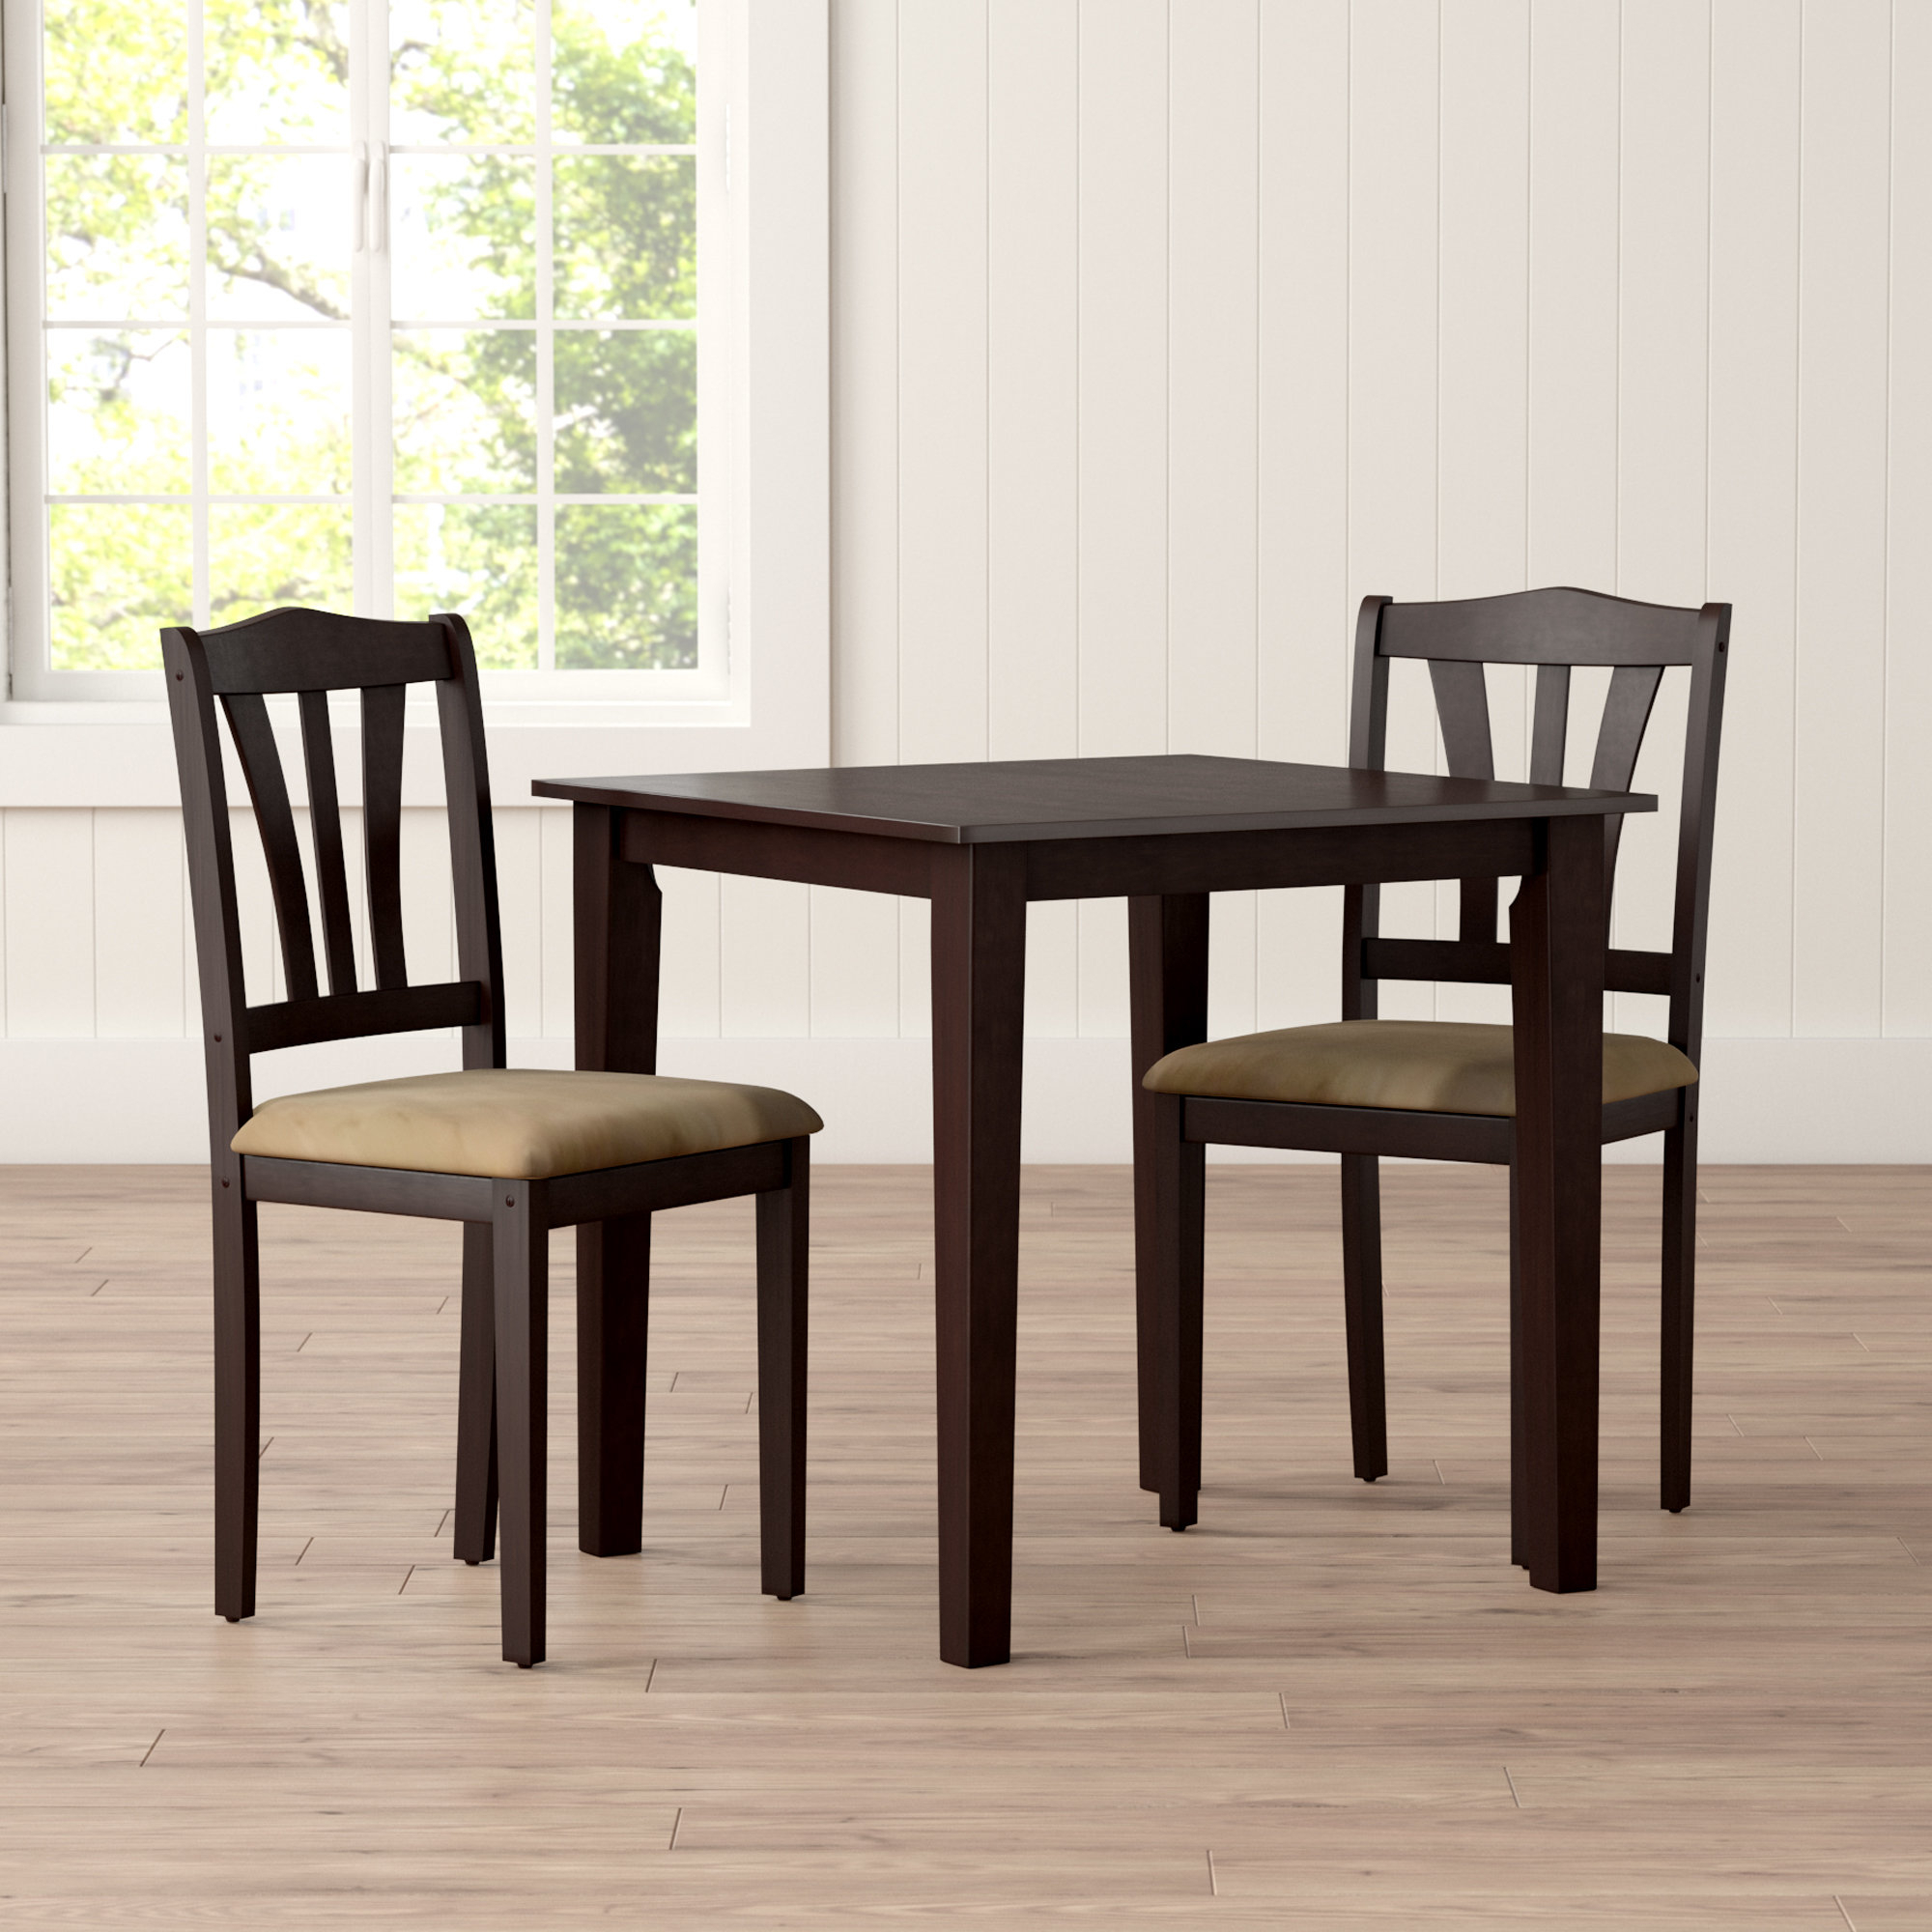 Wayfair Within Ryker 3 Piece Dining Sets (View 7 of 25)